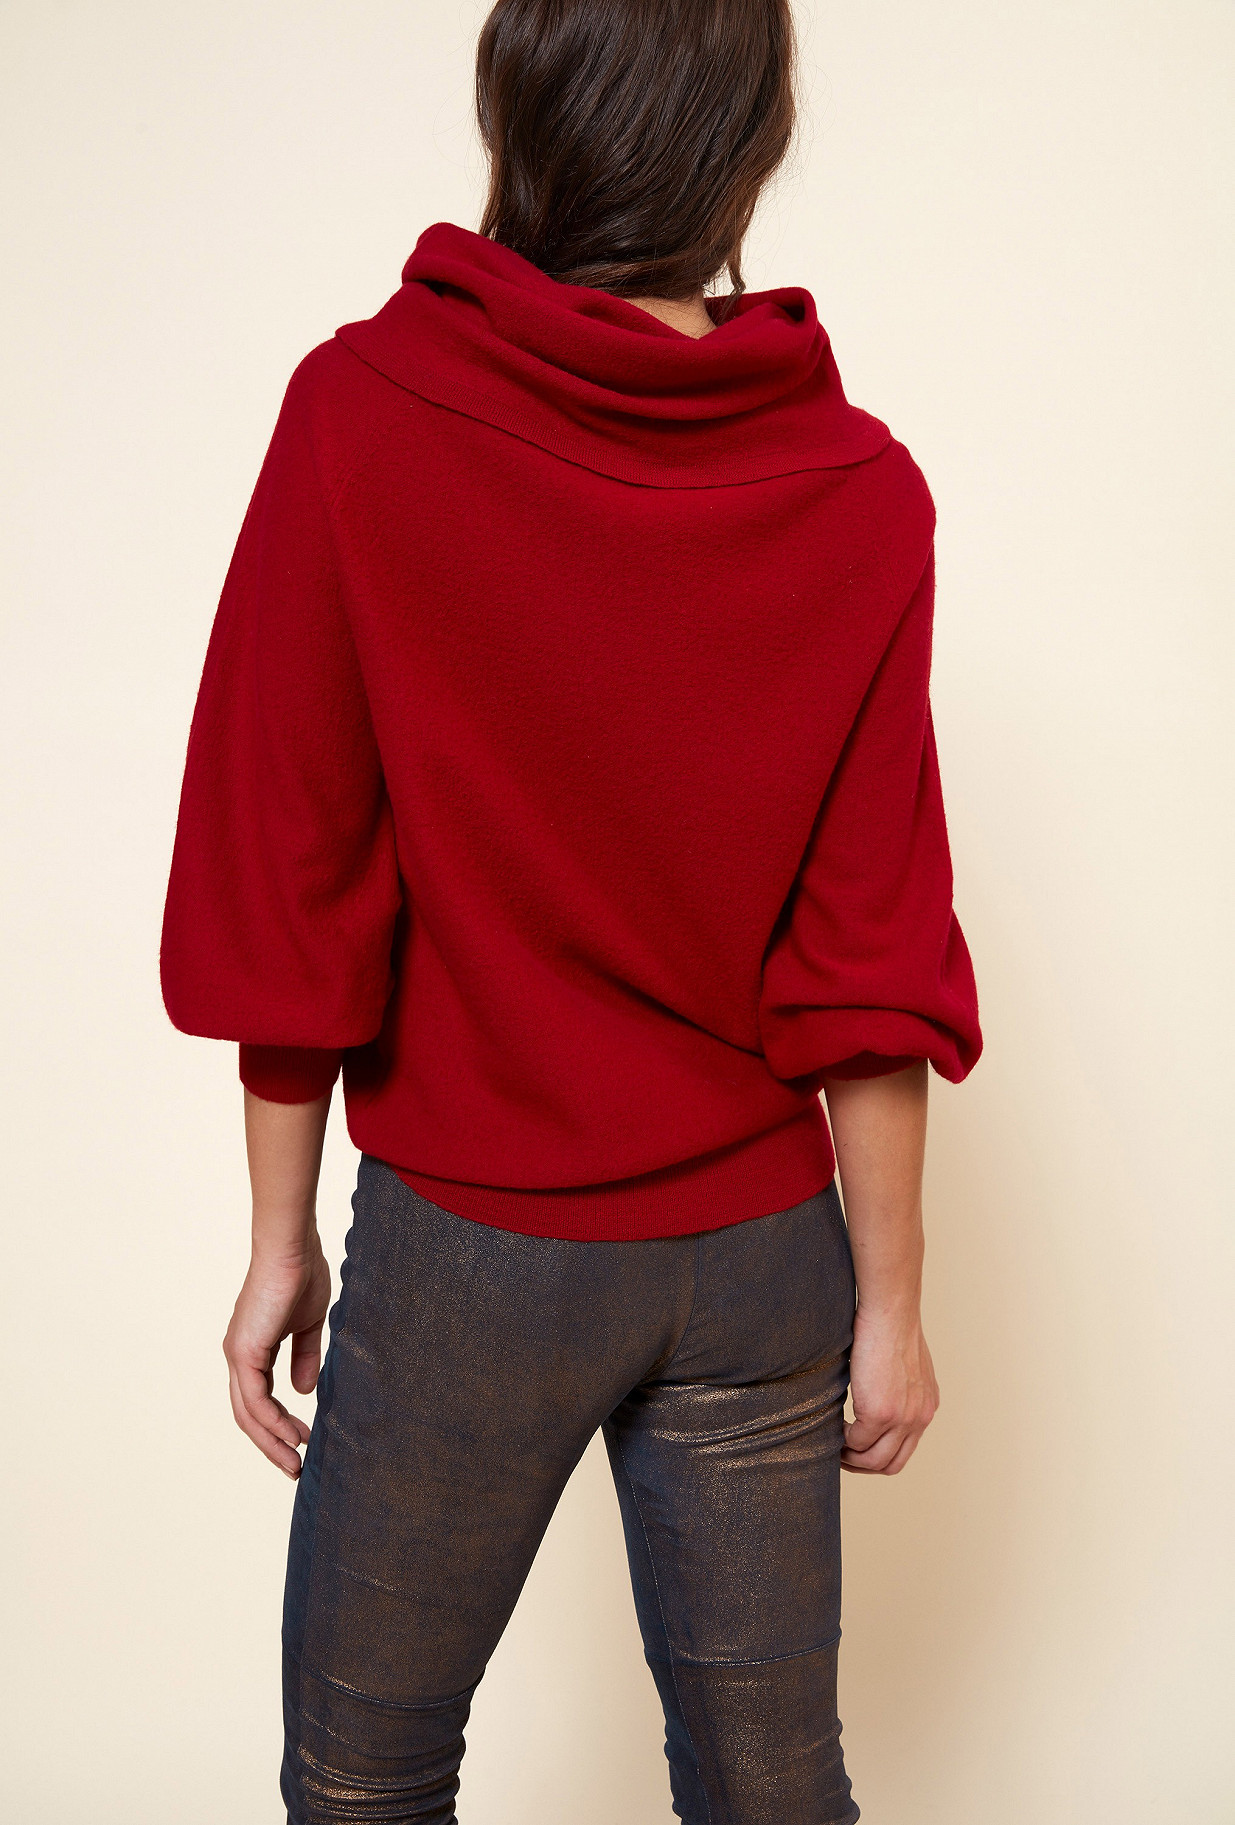 Red Knit Sonate